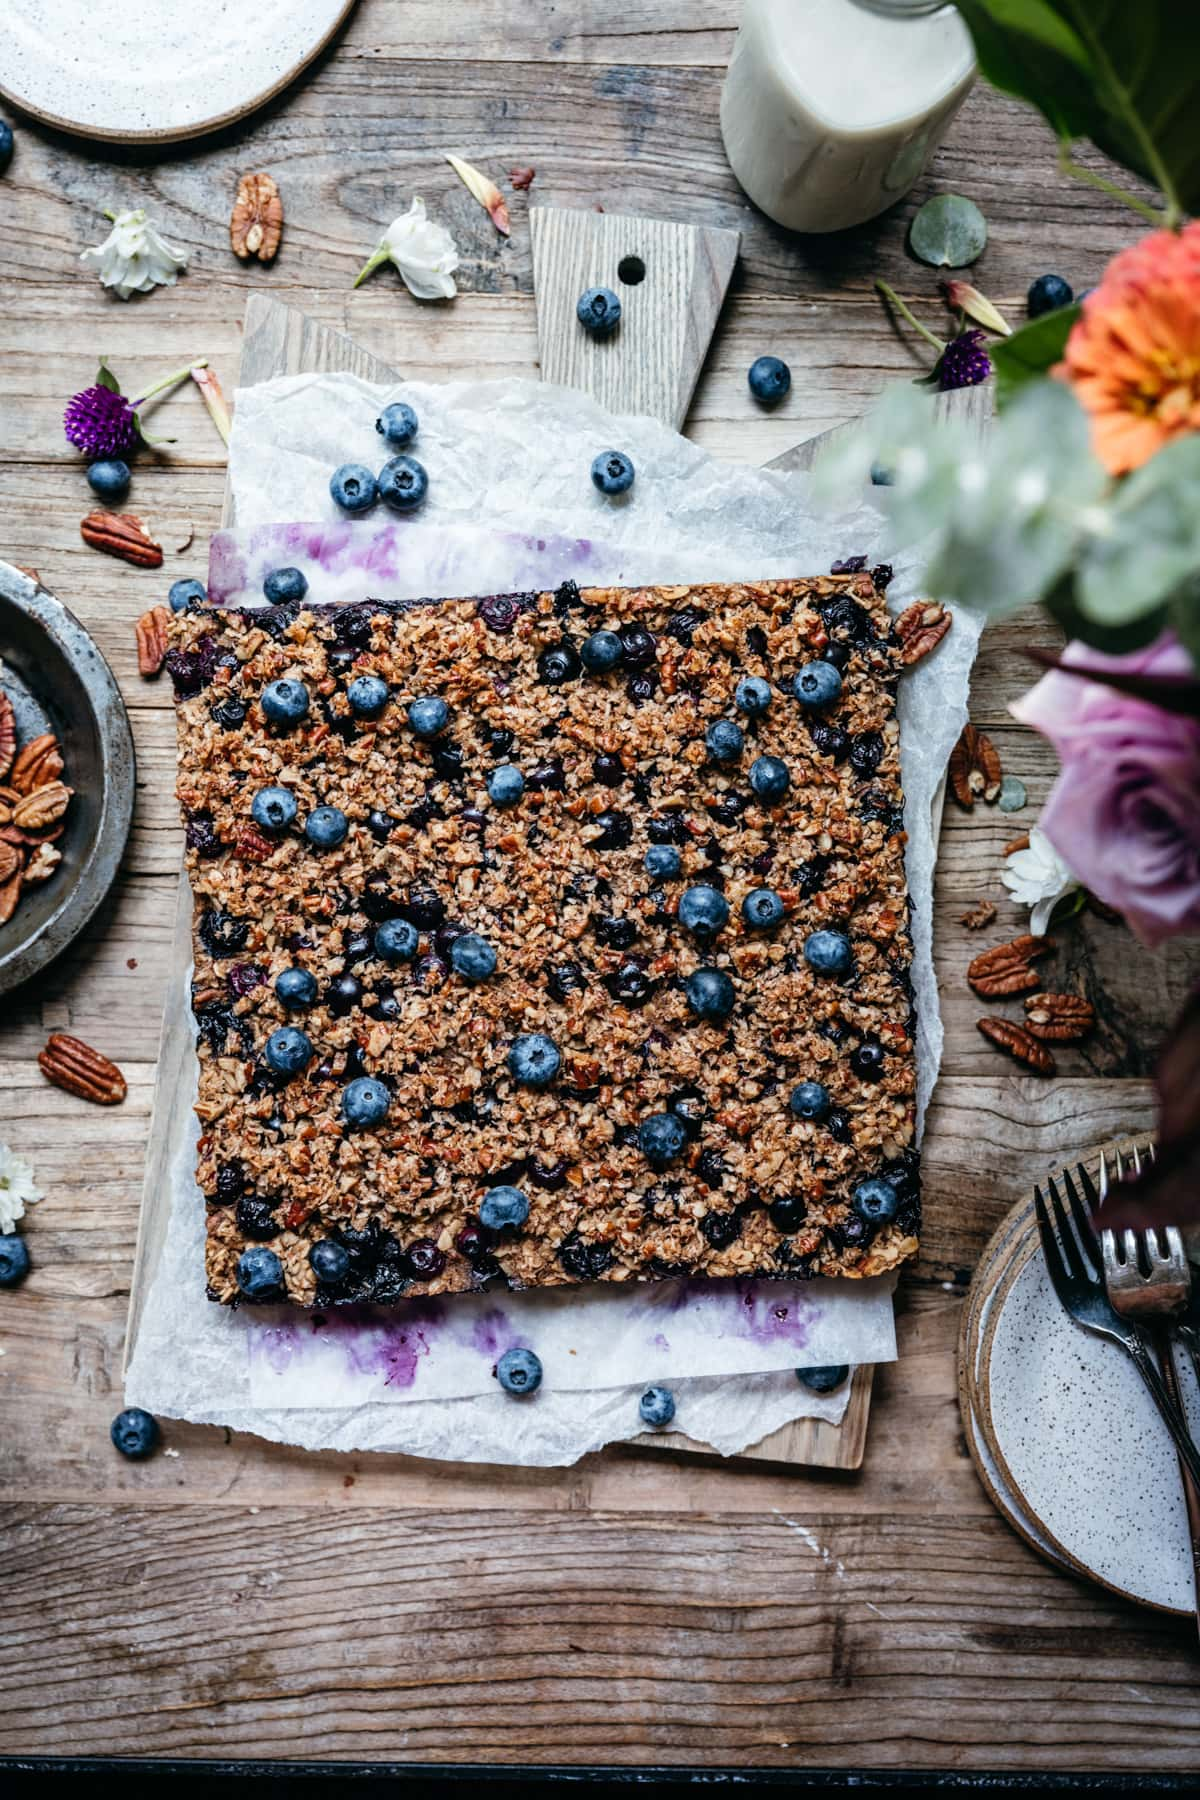 overhead view of vegan blueberry baked oatmeal on wood cutting board